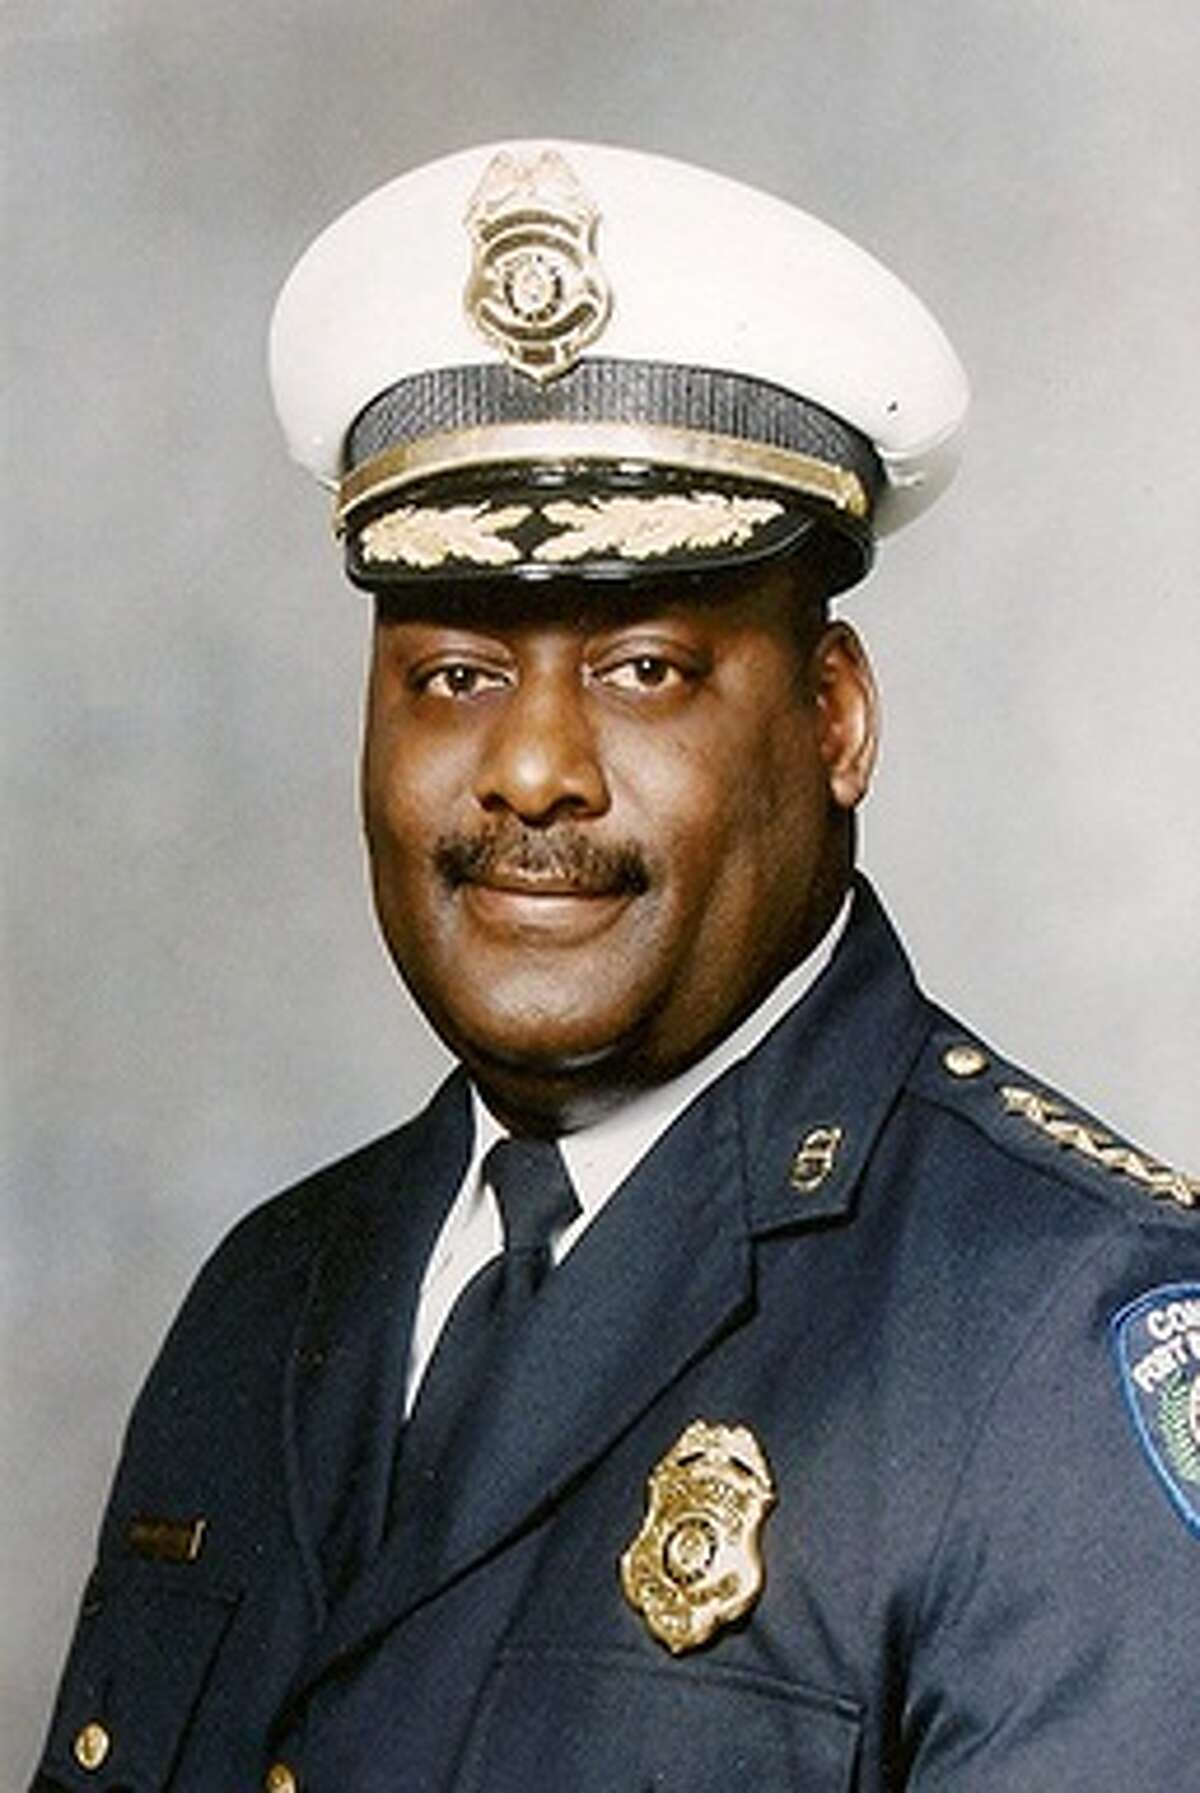 Fort Bend County Constable Ruben Davis died on Tuesday at 61.